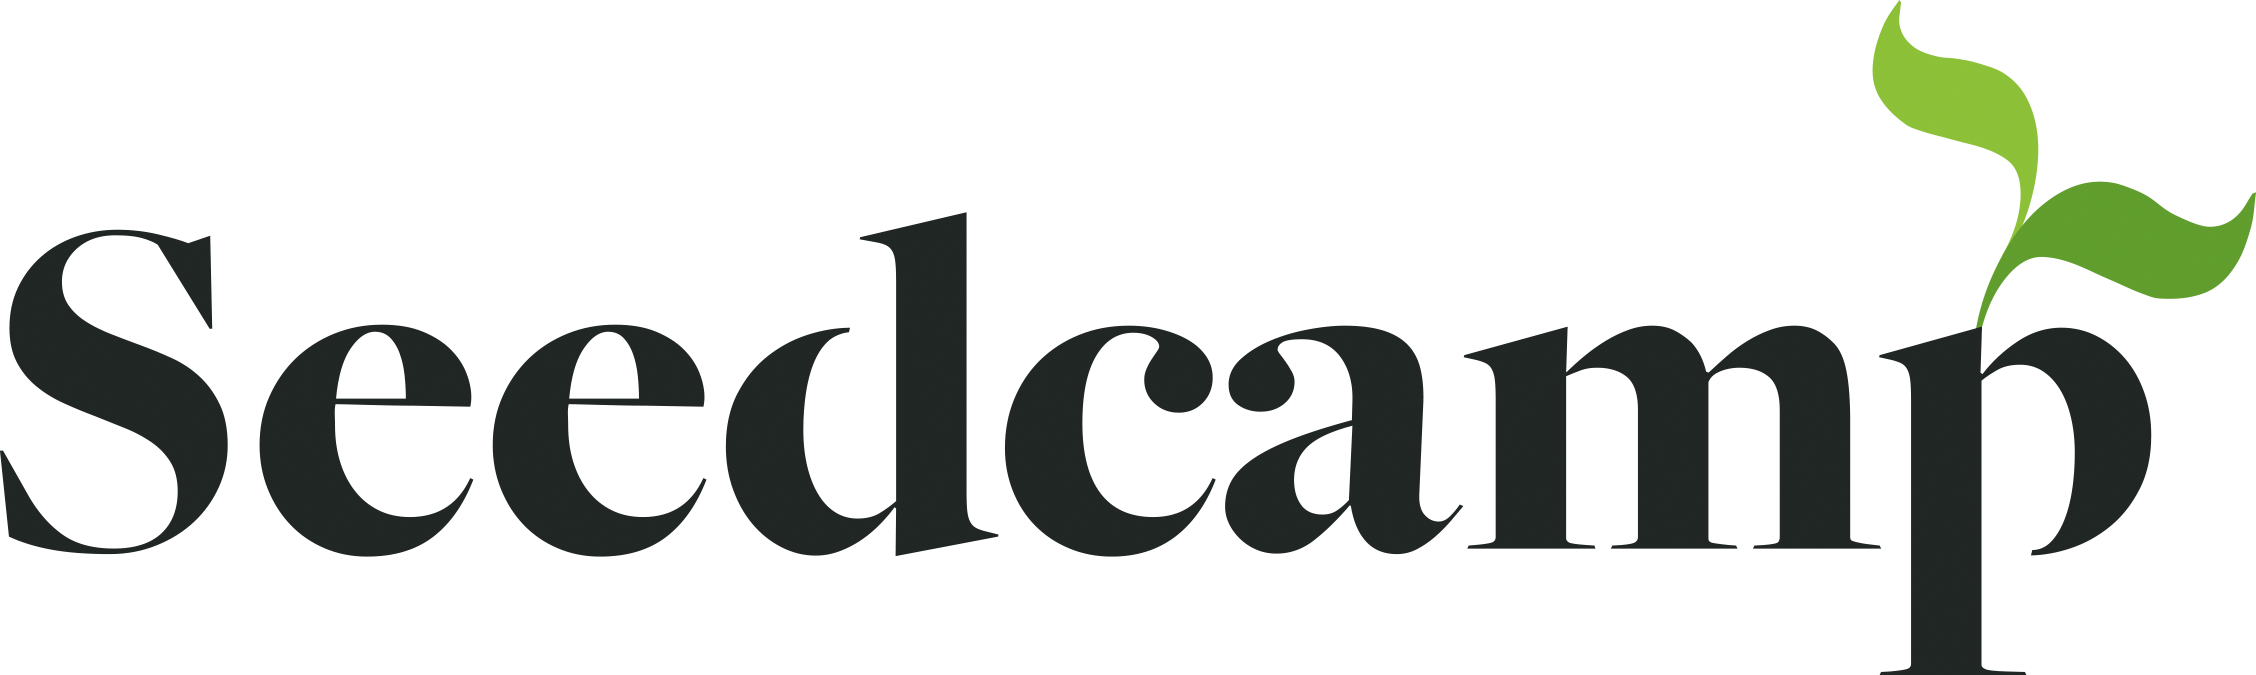 seedcamp-logo.png